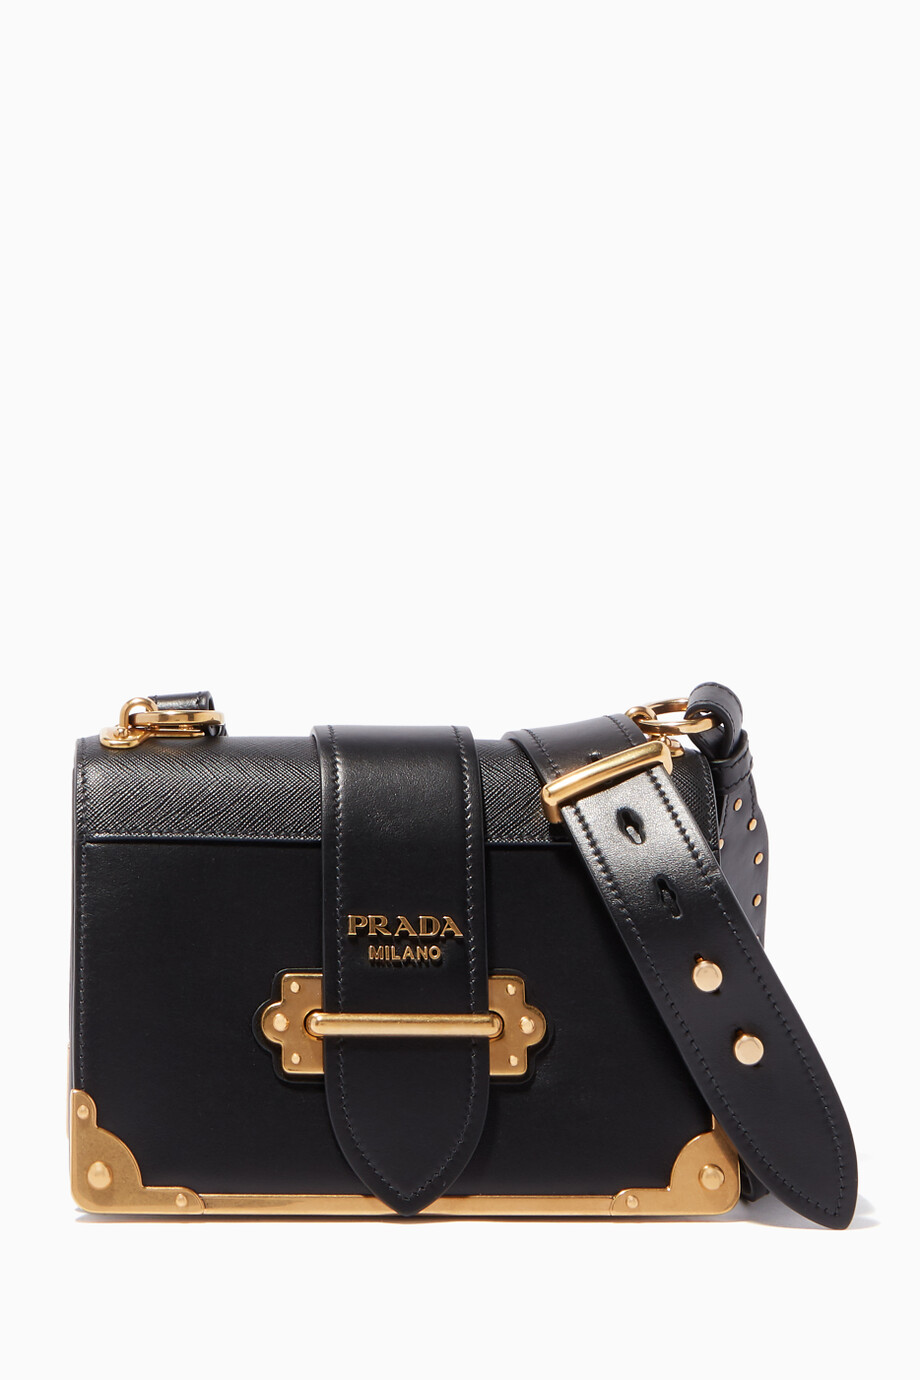 7d78241b4e Shop Prada Black Black City Cahier Leather Cross-Body Bag for Women ...